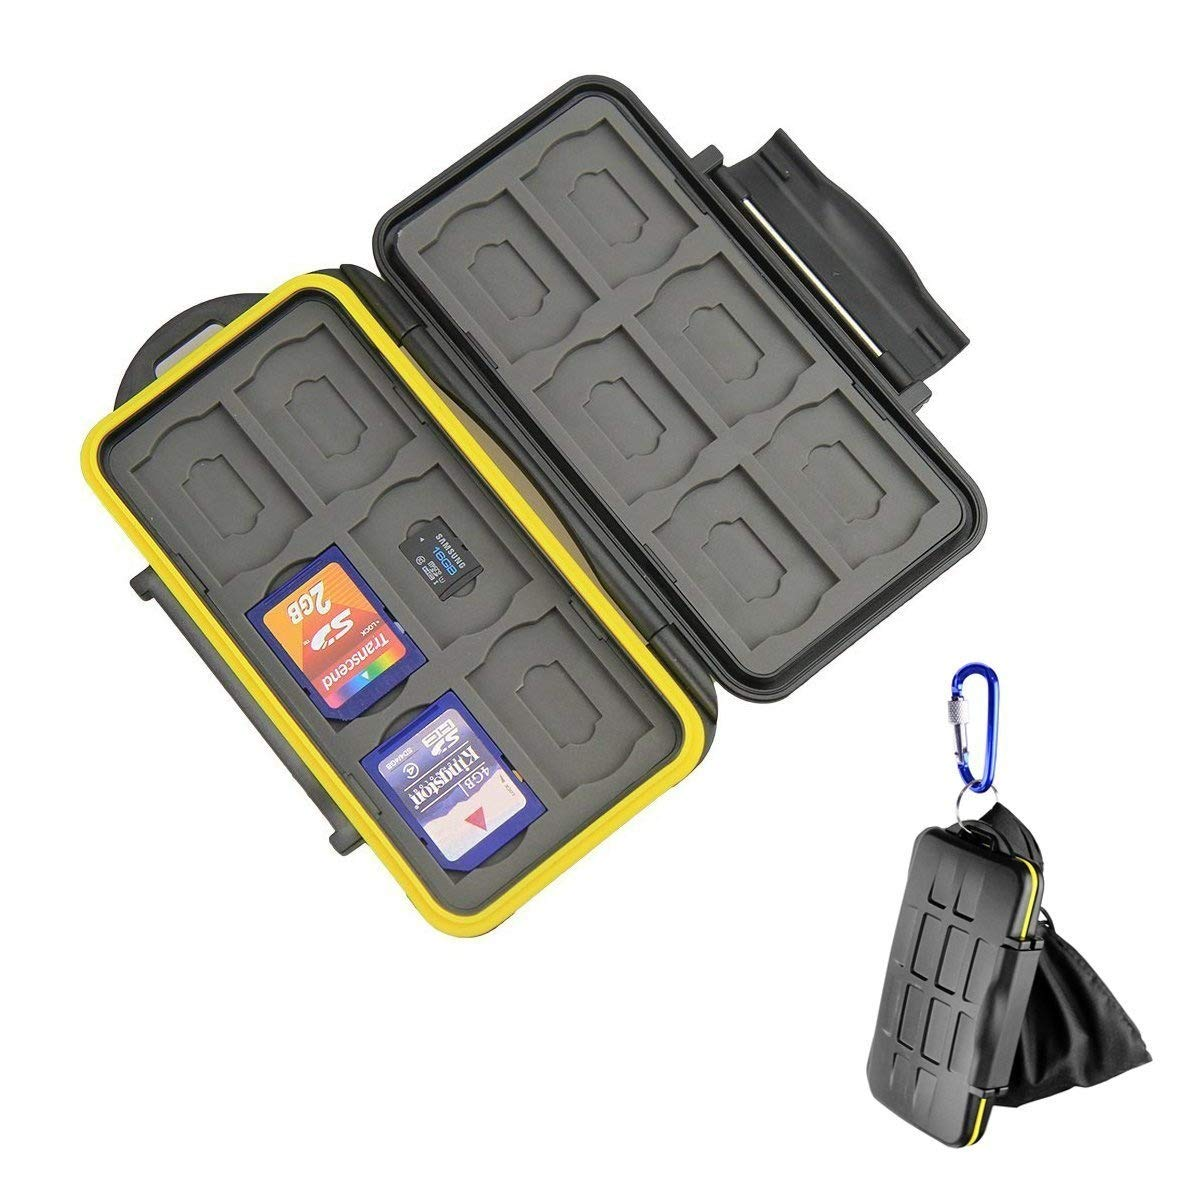 Beeway® Tough Water Shock Resistant Protector Memory Card Carrying Case Holder 24 Slots for SD SDHC SDXC and Micro SD TF with Storage Bag & Carabiner product image